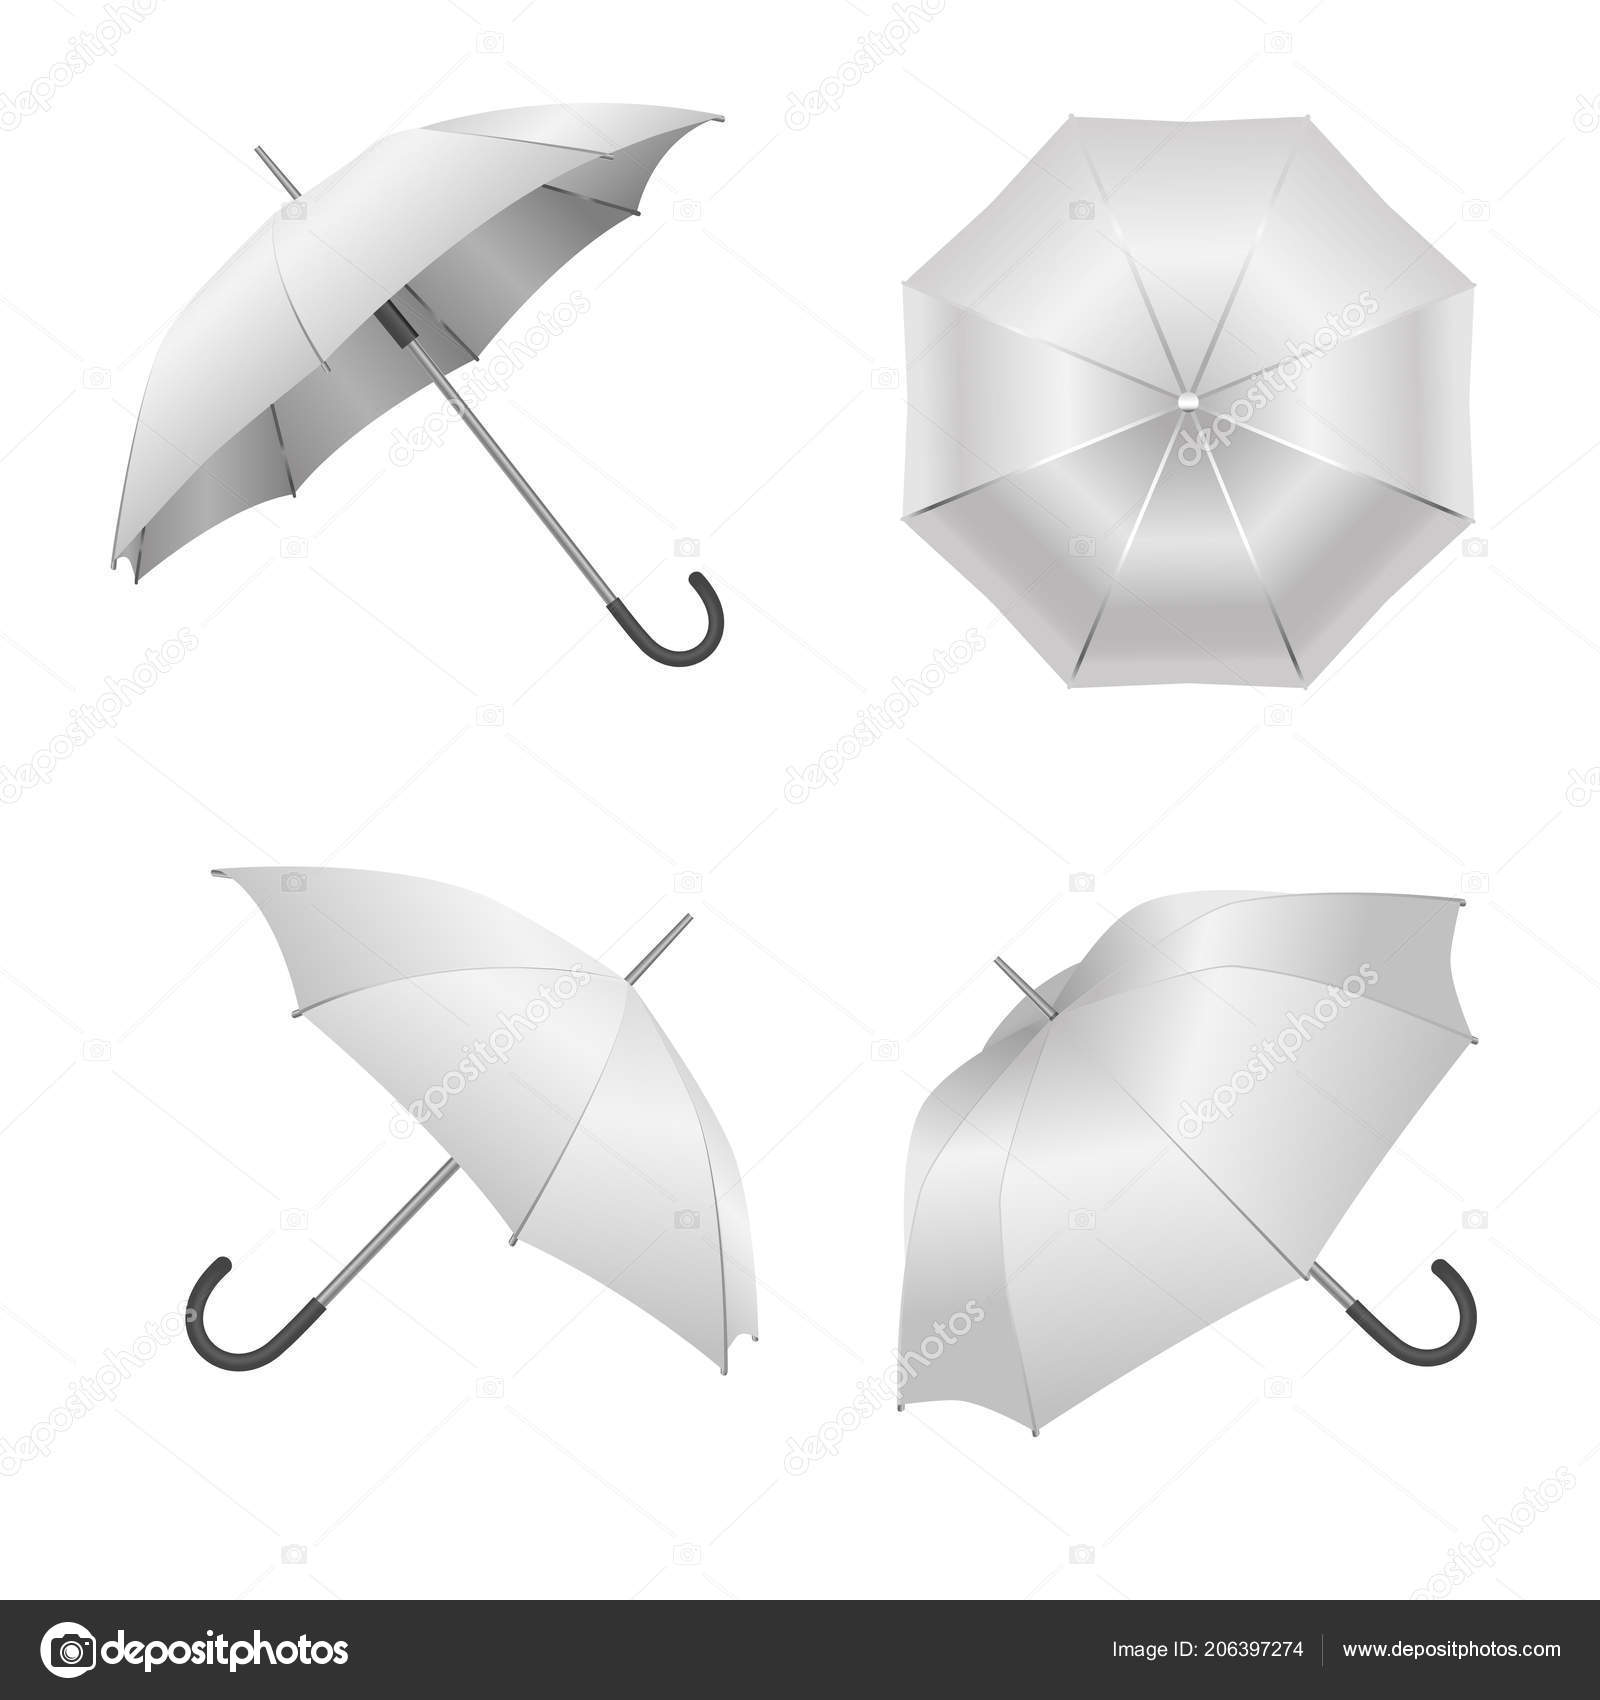 Realistic Detailed 3d White Blank Umbrella Template Mockup Set